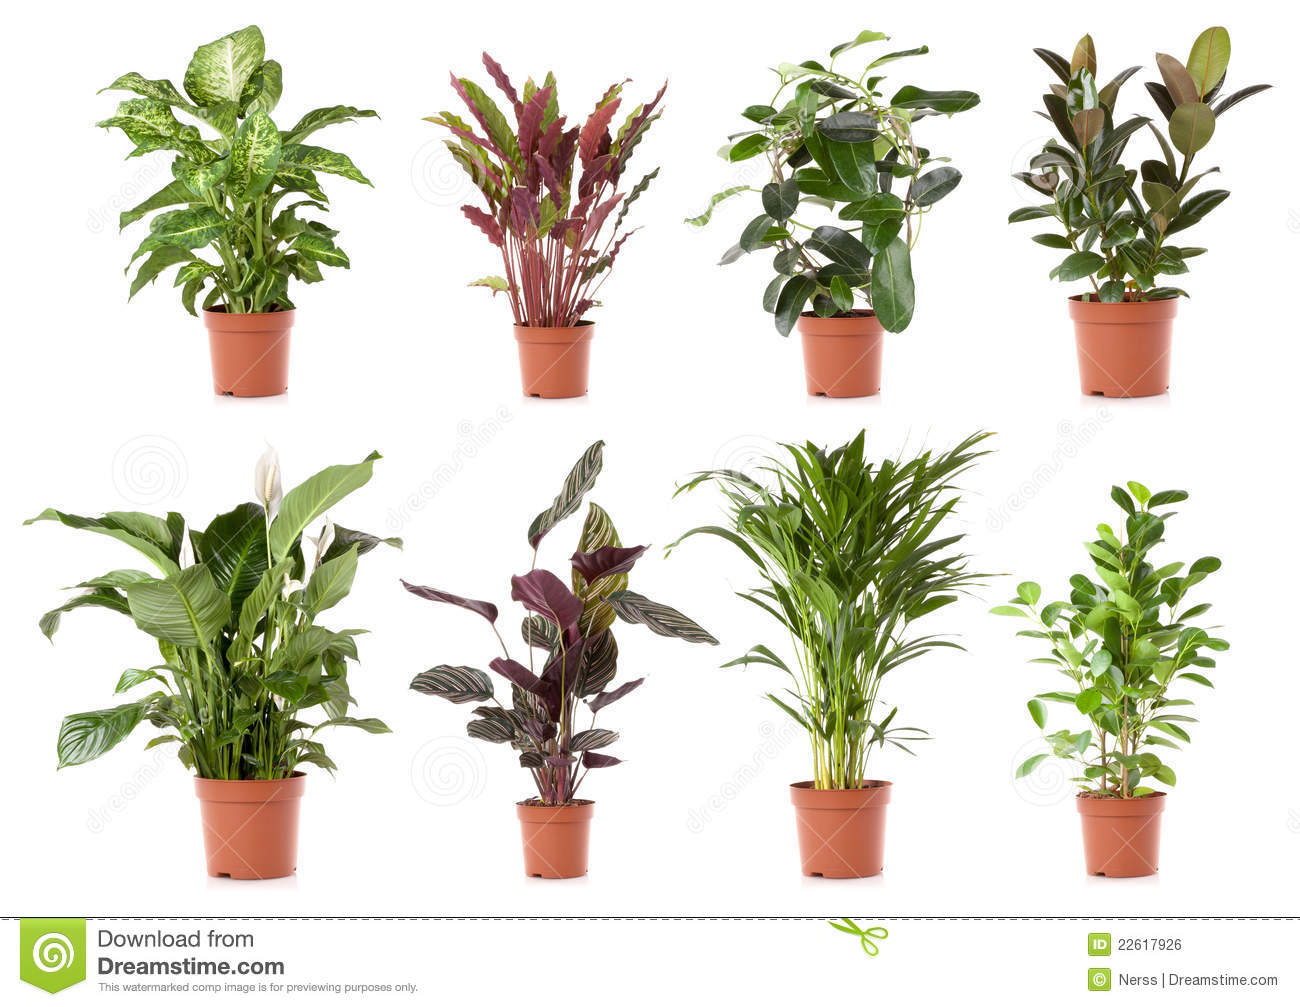 Royalty free plant images image black and white stock Plant Pot Royalty Free Stock Photography - Image: 15962987 image black and white stock